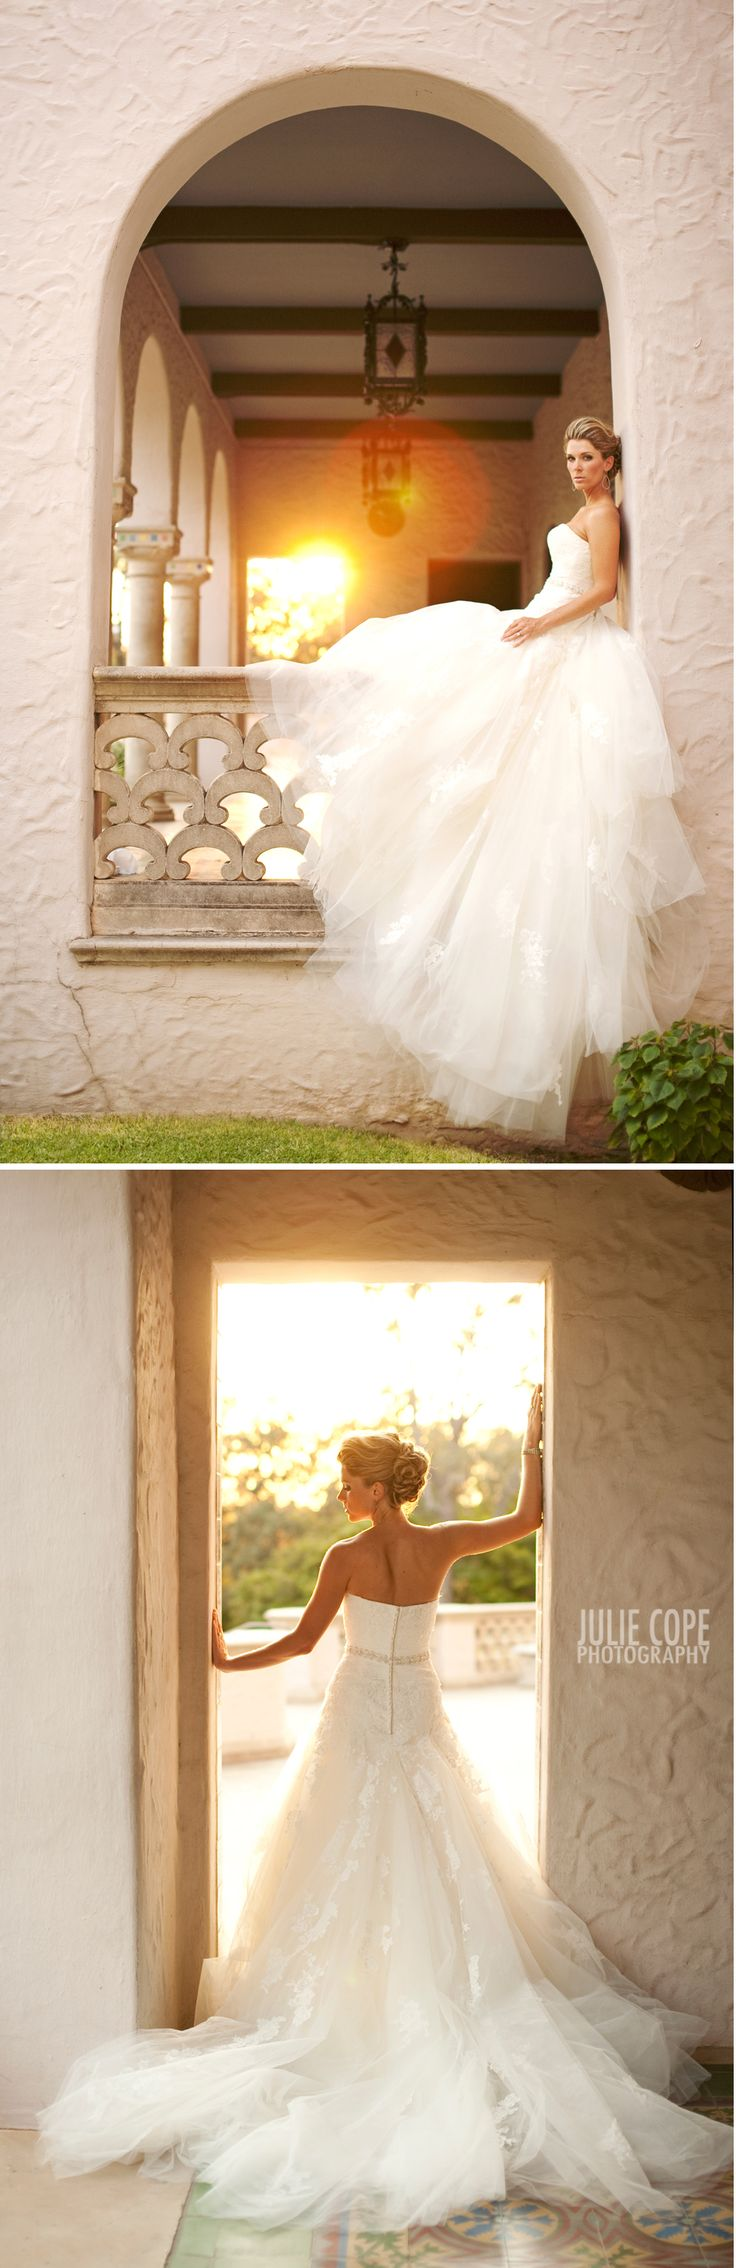 Beautiful Wedding Portraits - I like the doorway picture better than the classic looking in a mirror or out a window shots.